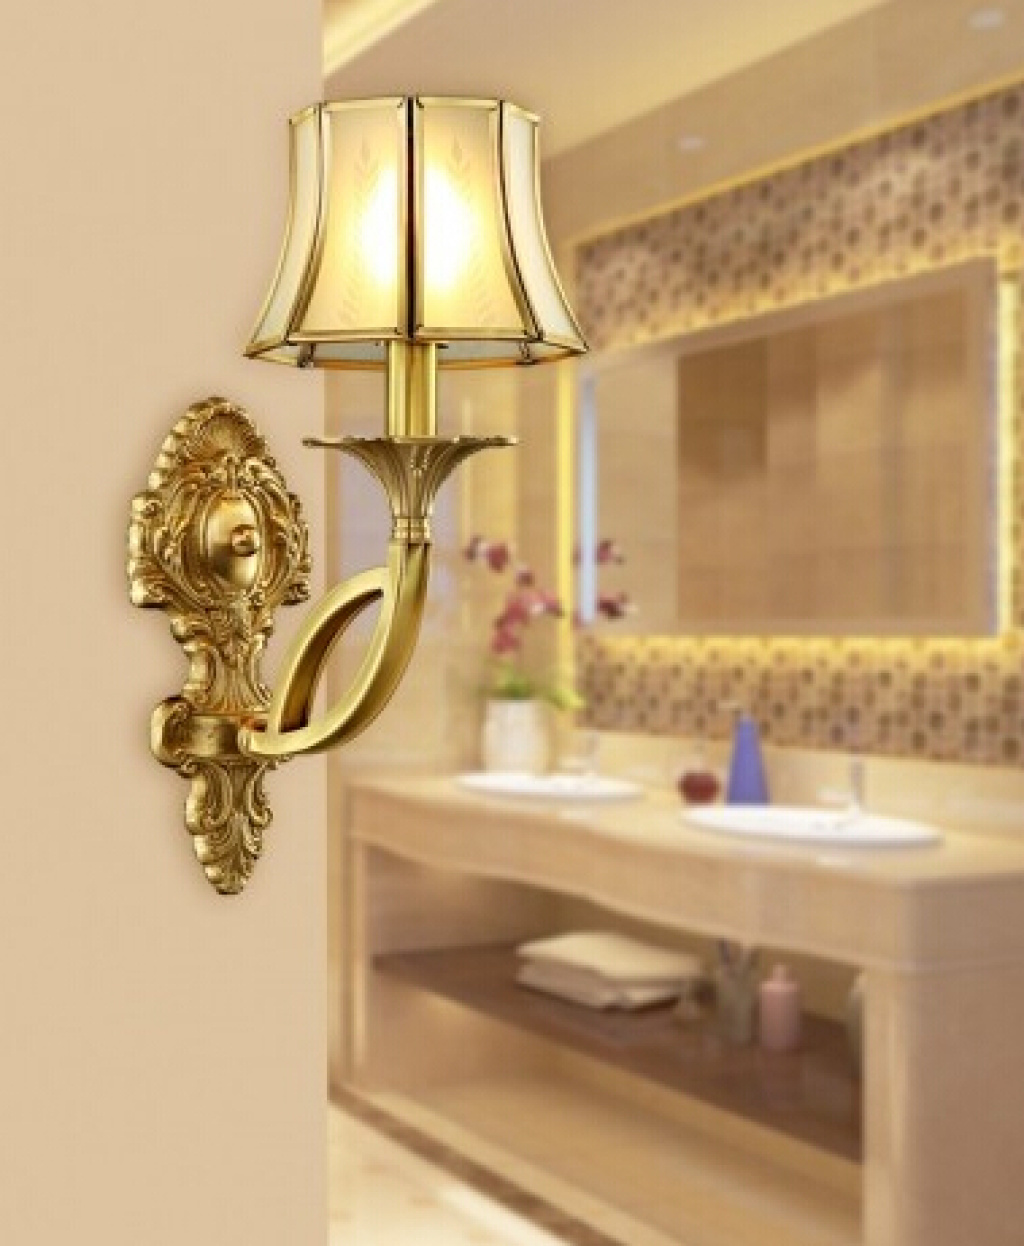 Supply European-style Wall lamp garden garden lamps led waterproof light retro Wall lamp lamps-